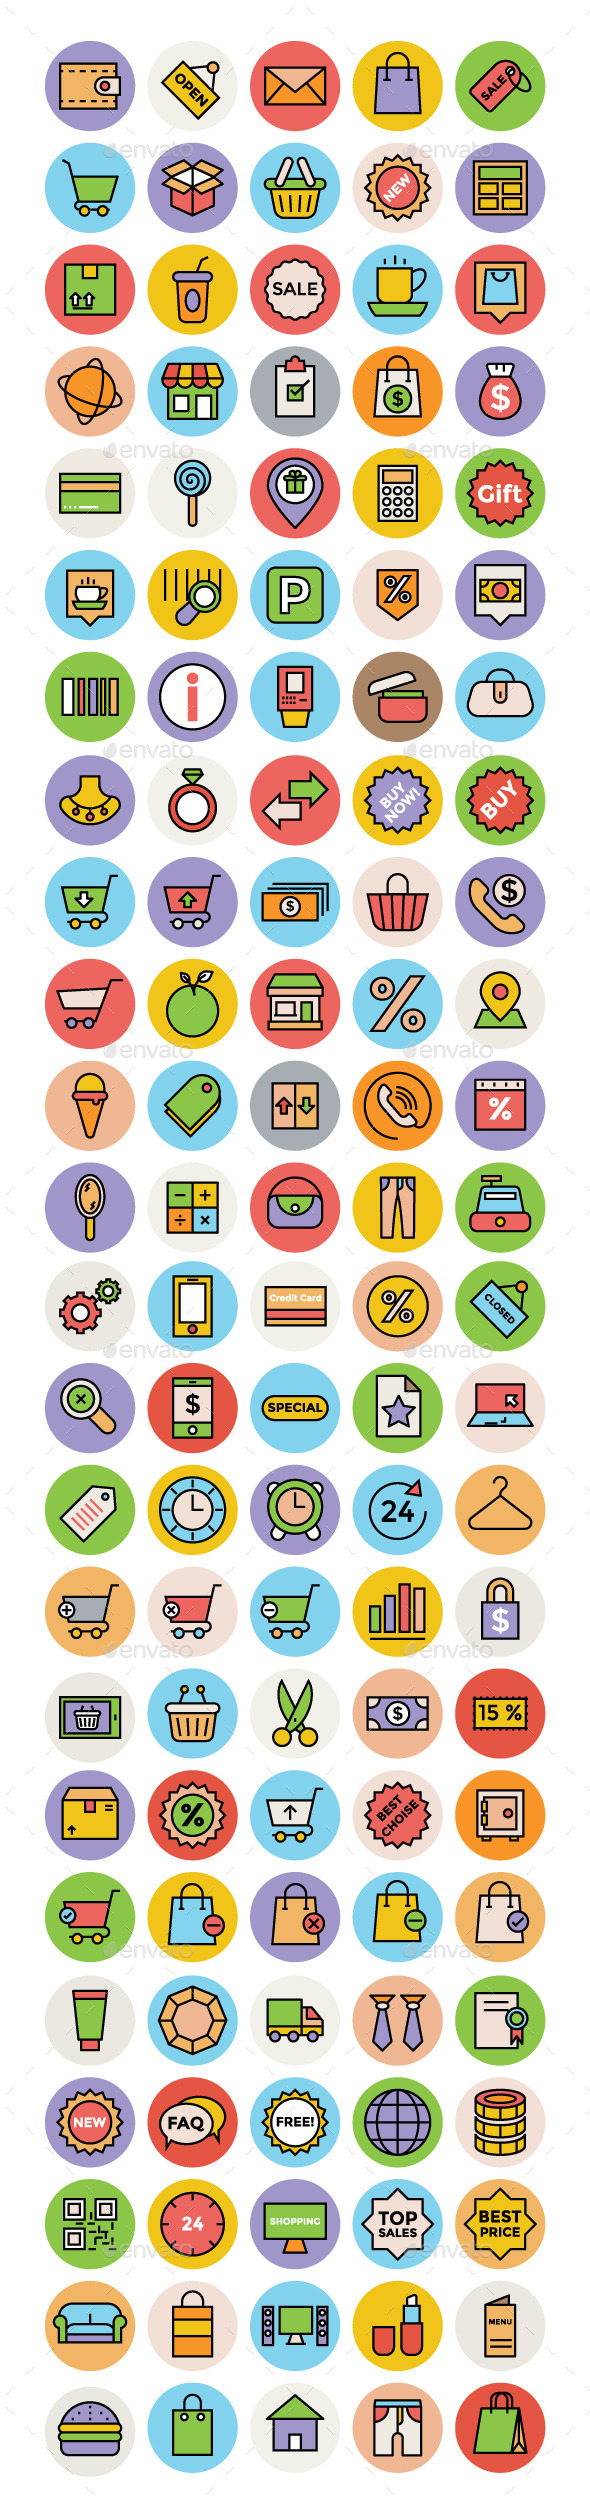 100+ Shopping and Commerce Vector Icons - Technology Icons